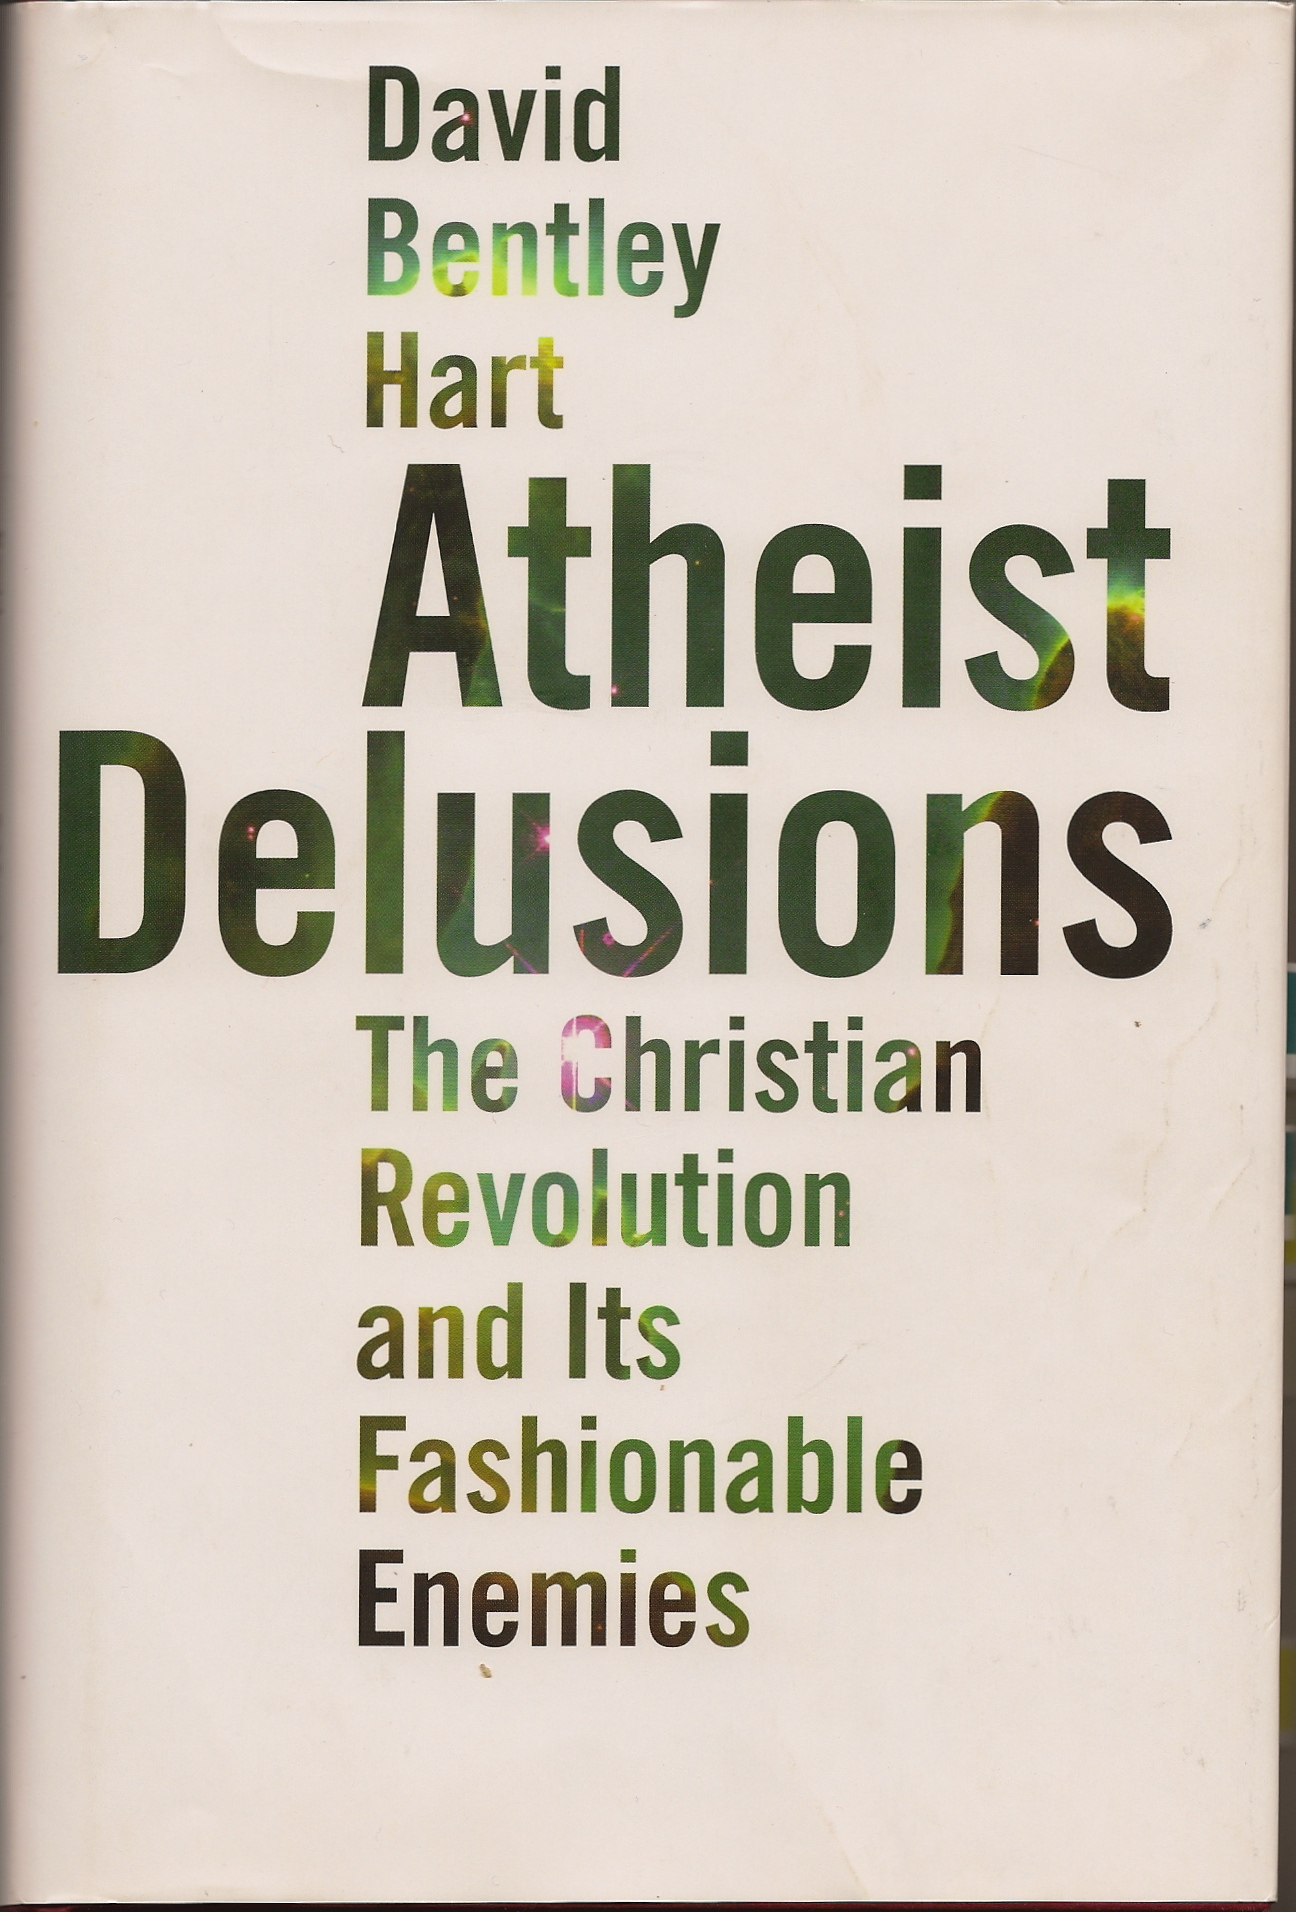 david harts overview of the christian revolution and its counterparts